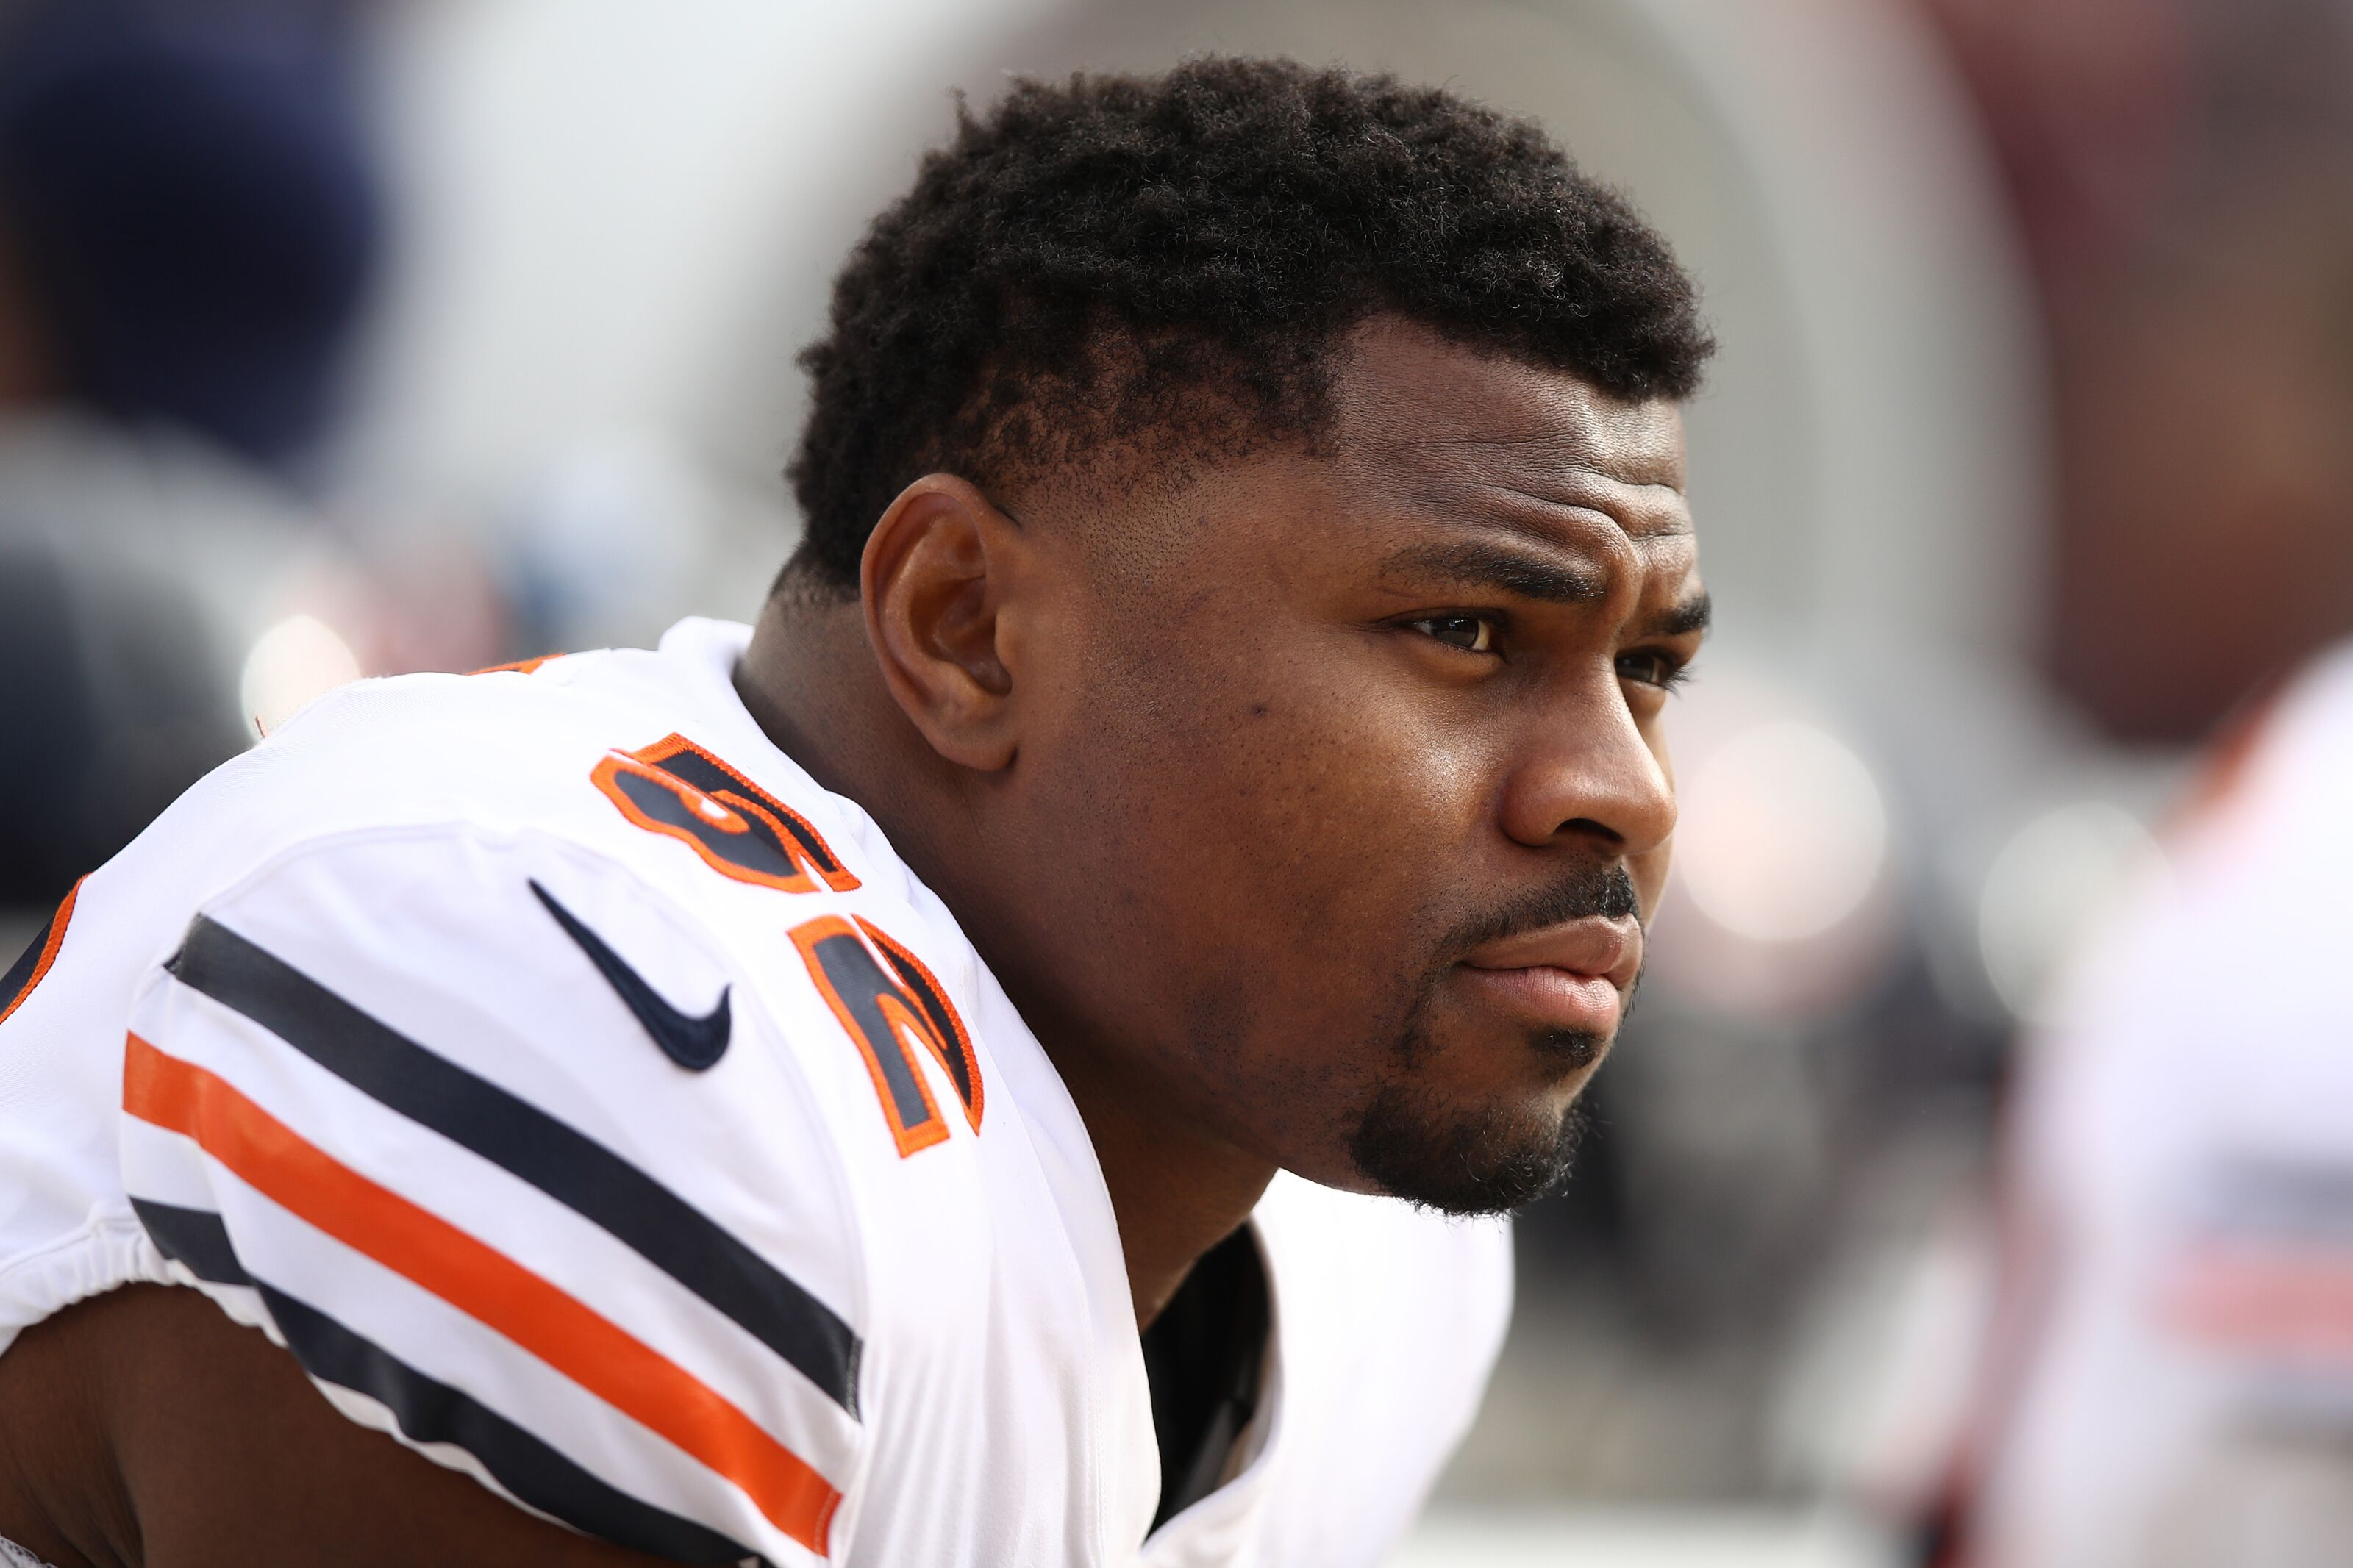 Chicago Bears: Khalil Mack featured in awesome Nike commercial